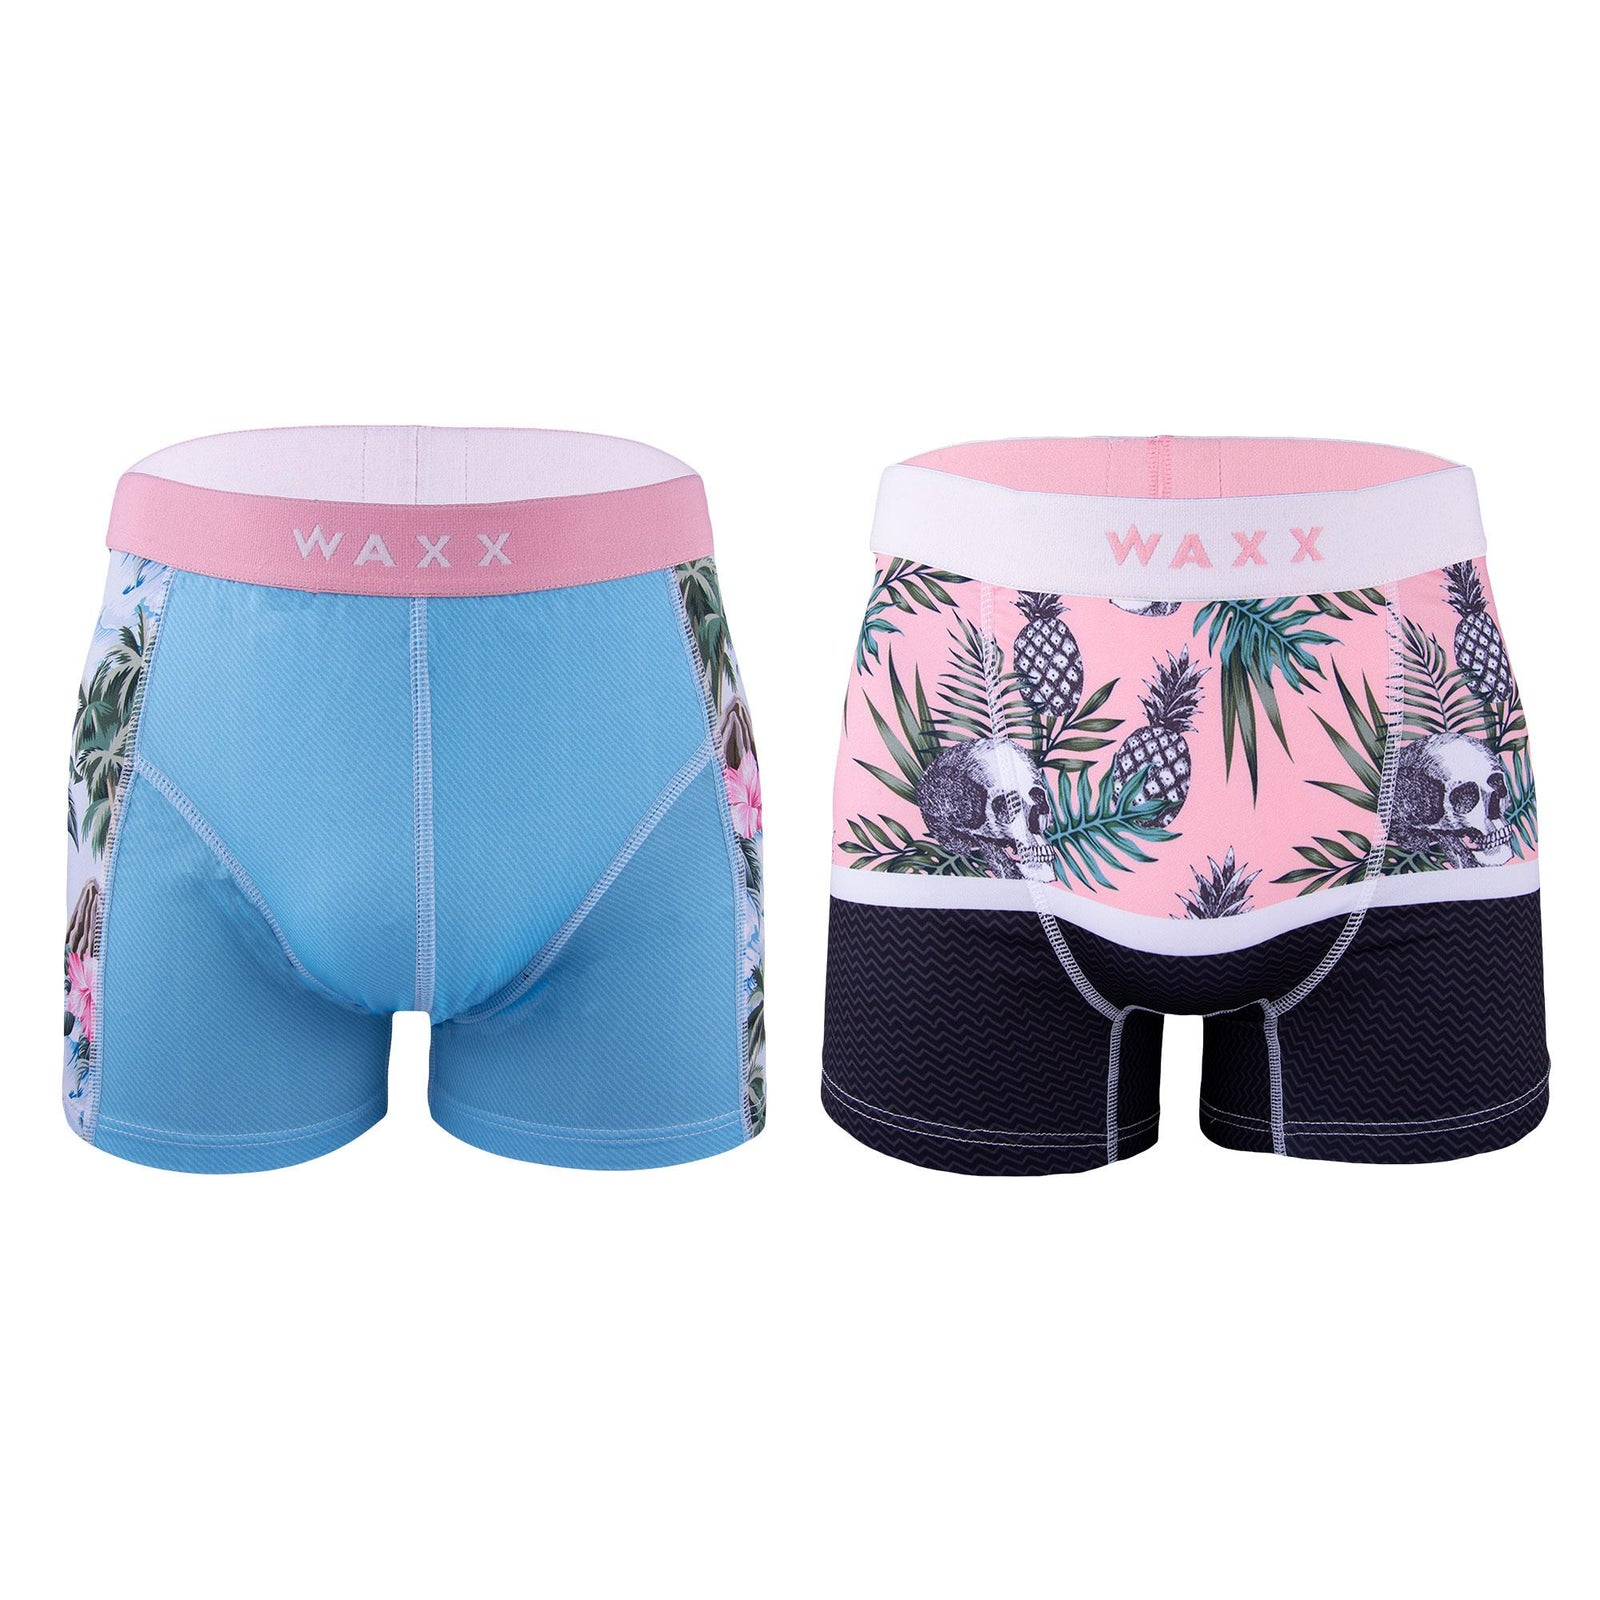 2 Pack Waxx Boxer Short Trunks - Hawaiian